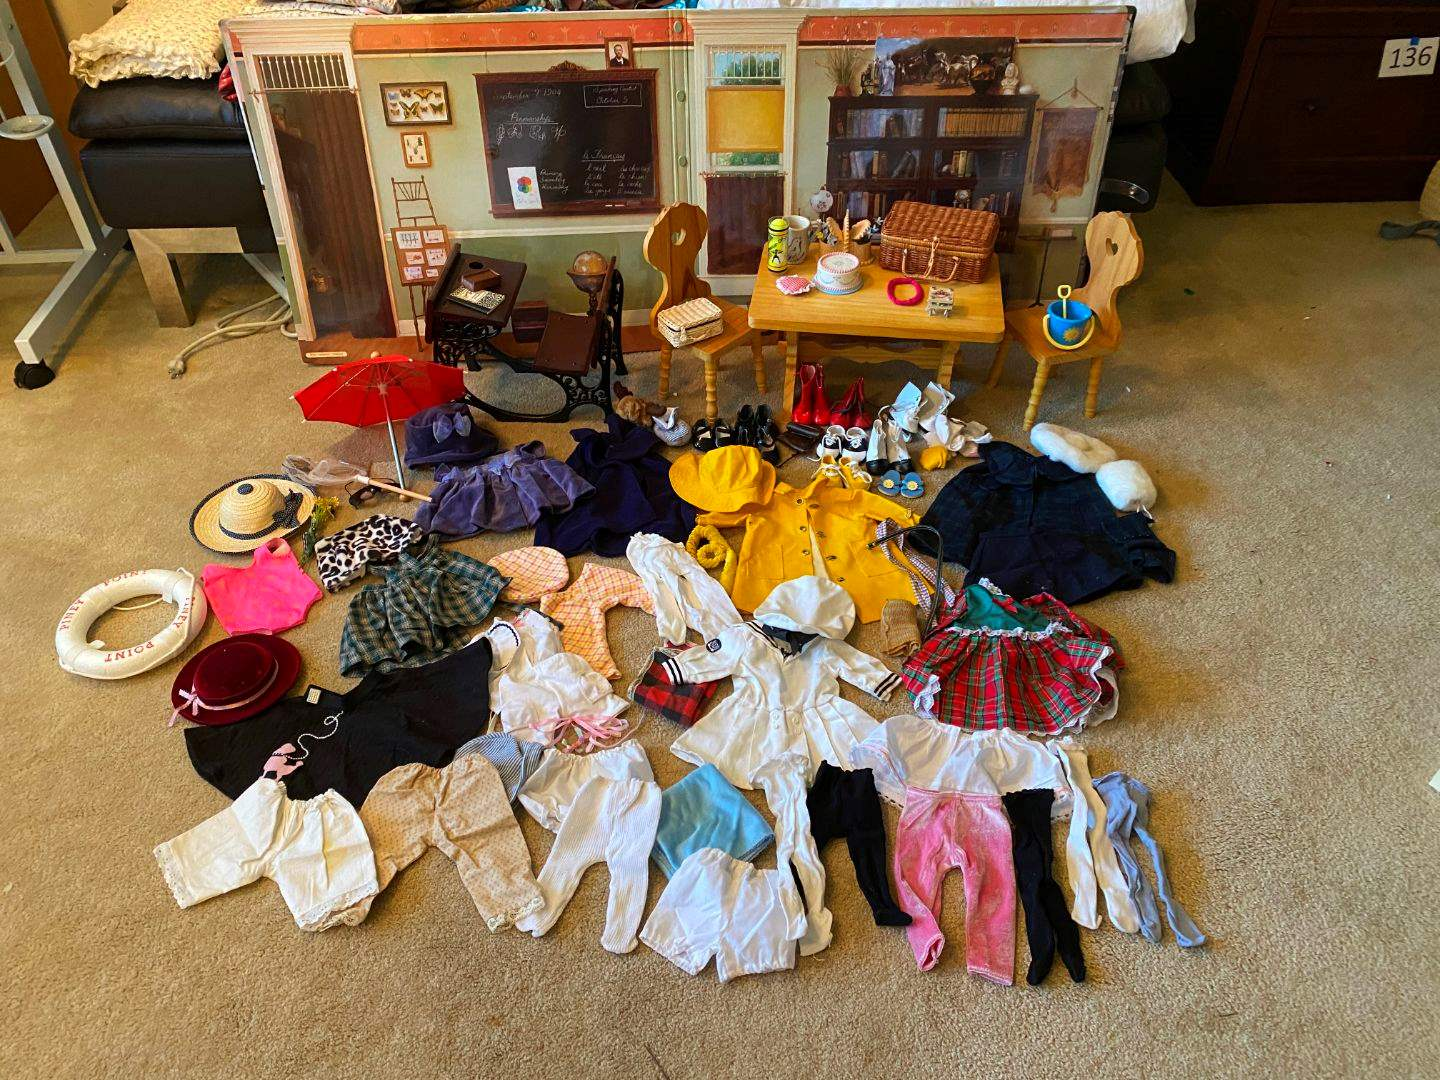 Lot # 161 - American Girl Doll Clothes, American Girl Table & Chairs, American Girl School Desk & Accessories,Scenes & Settings  (main image)